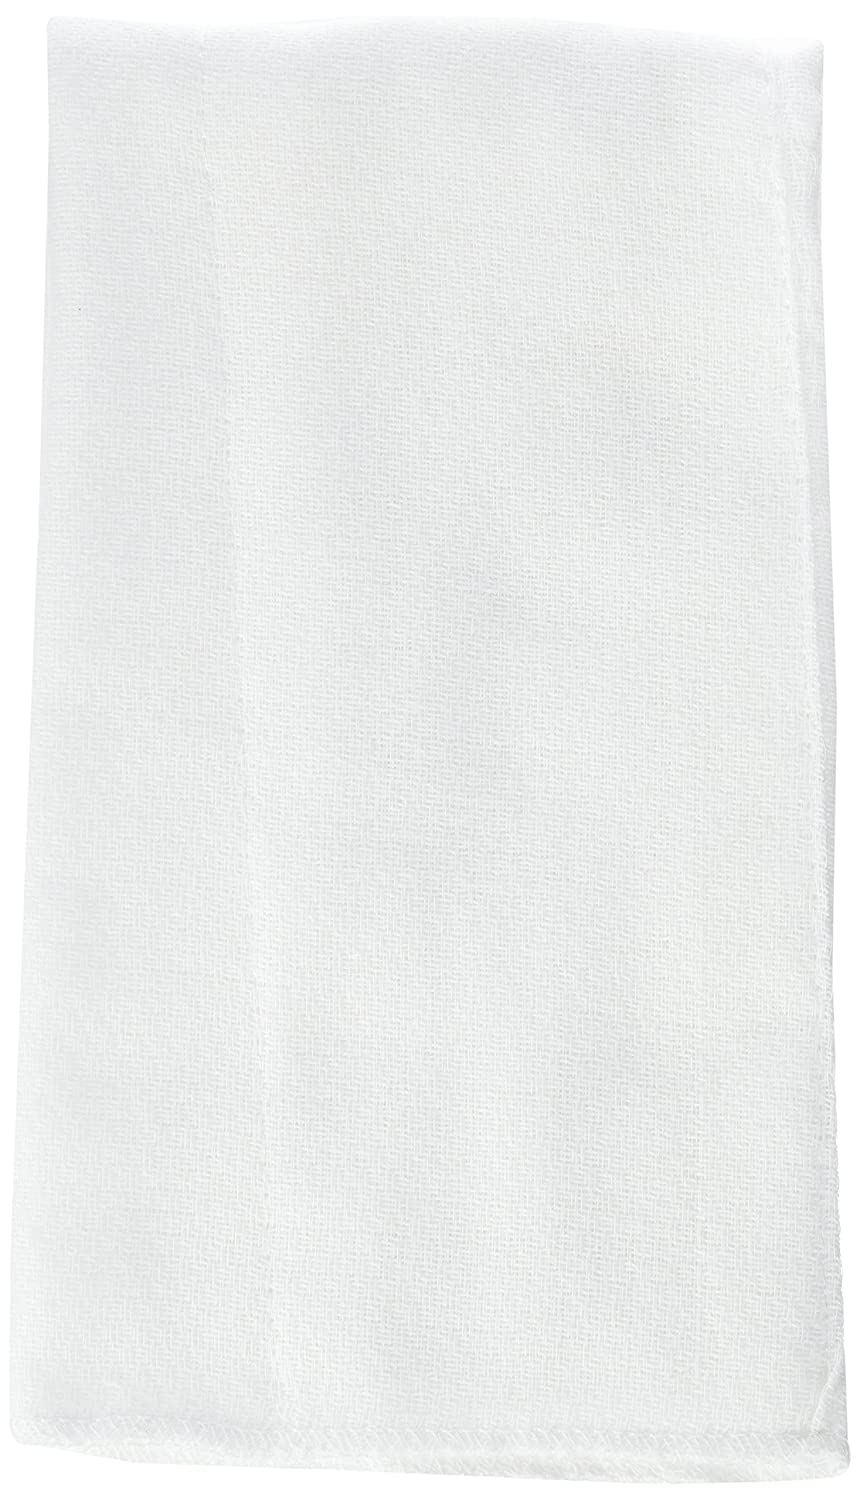 Dundee Burp Cloths/Diapers, White Crown Crafts Inc 13277